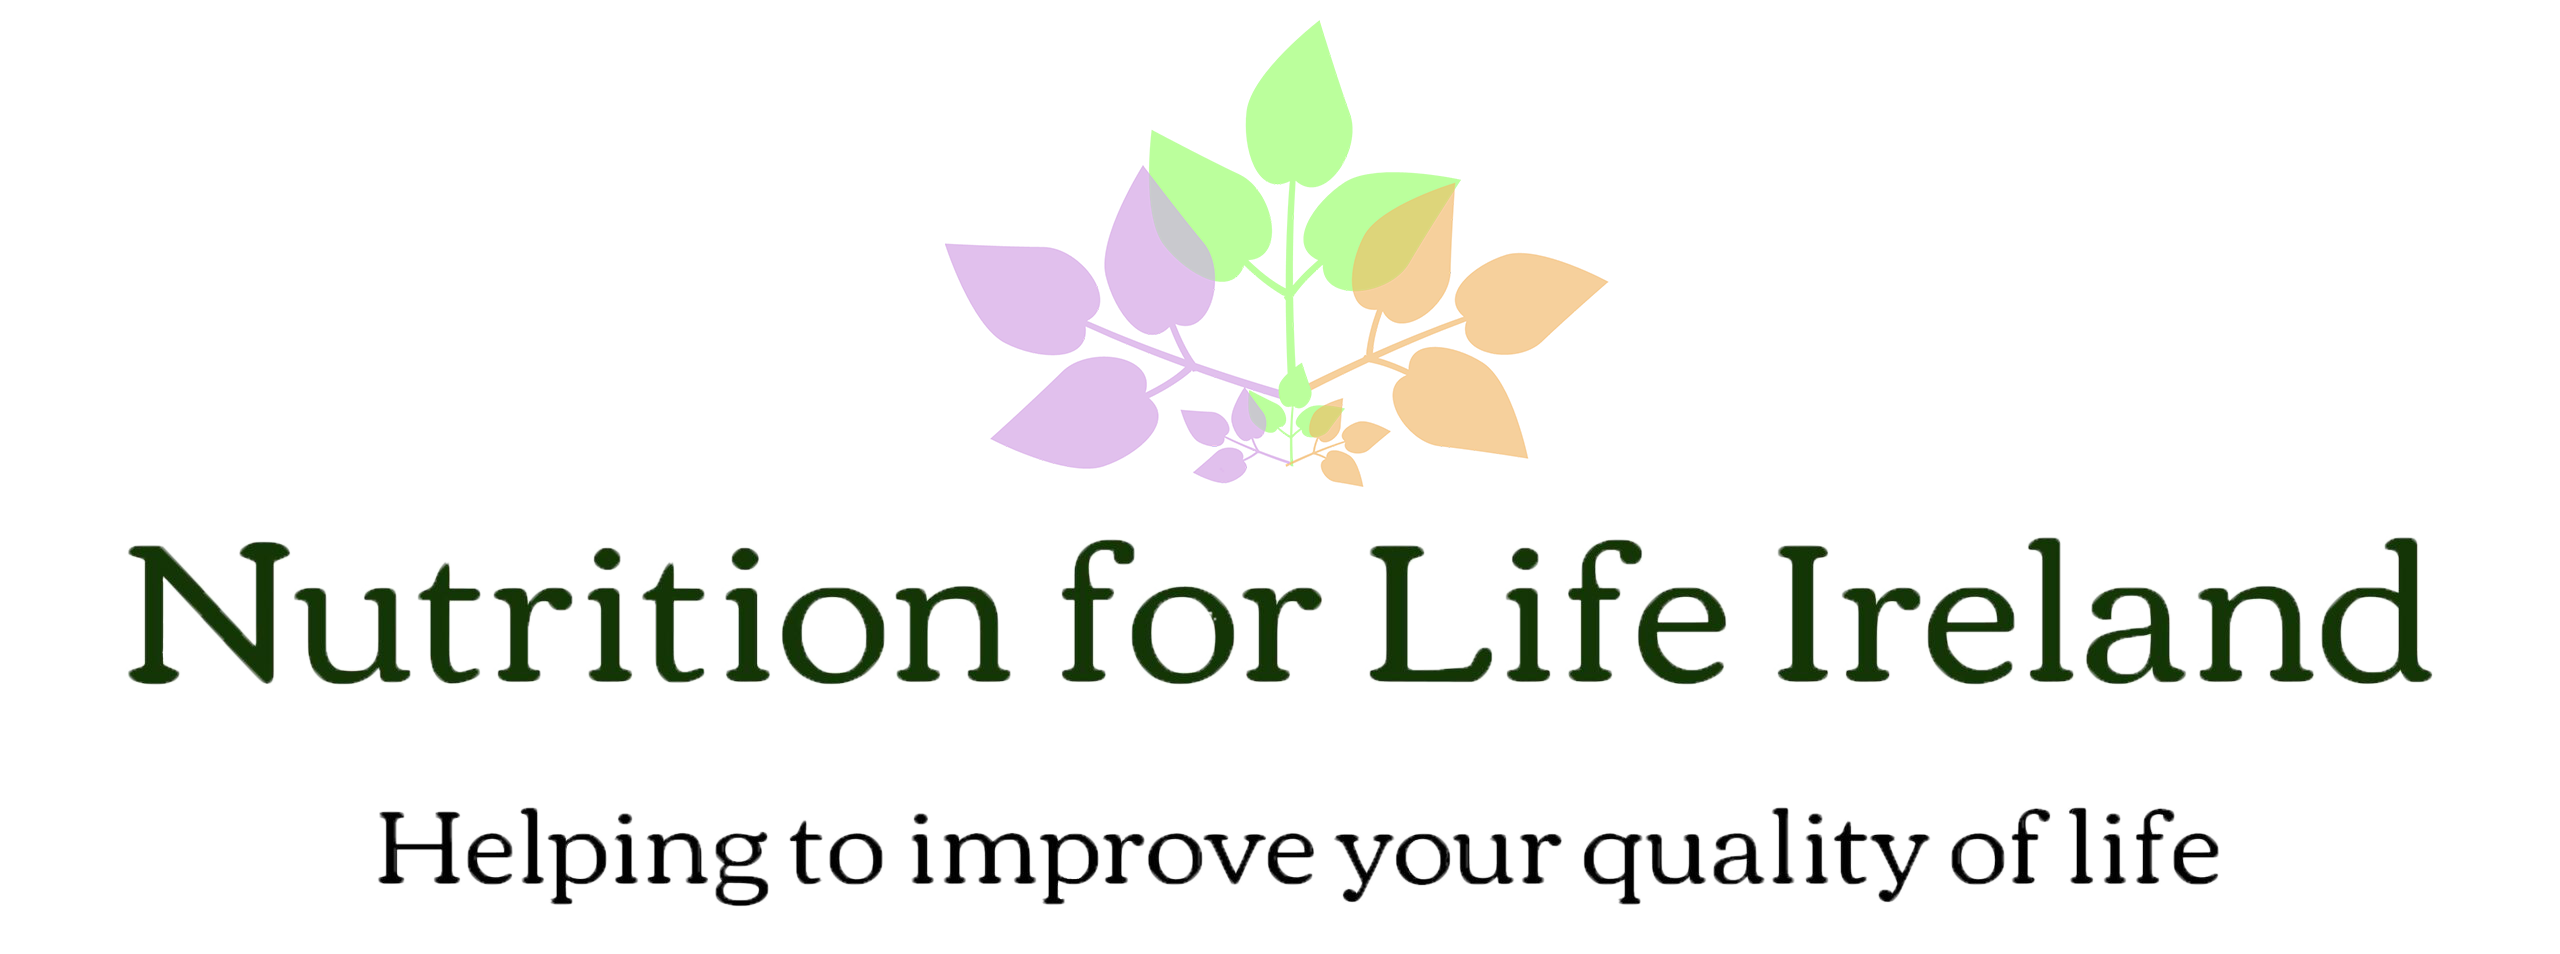 Nutrition For Life Ireland